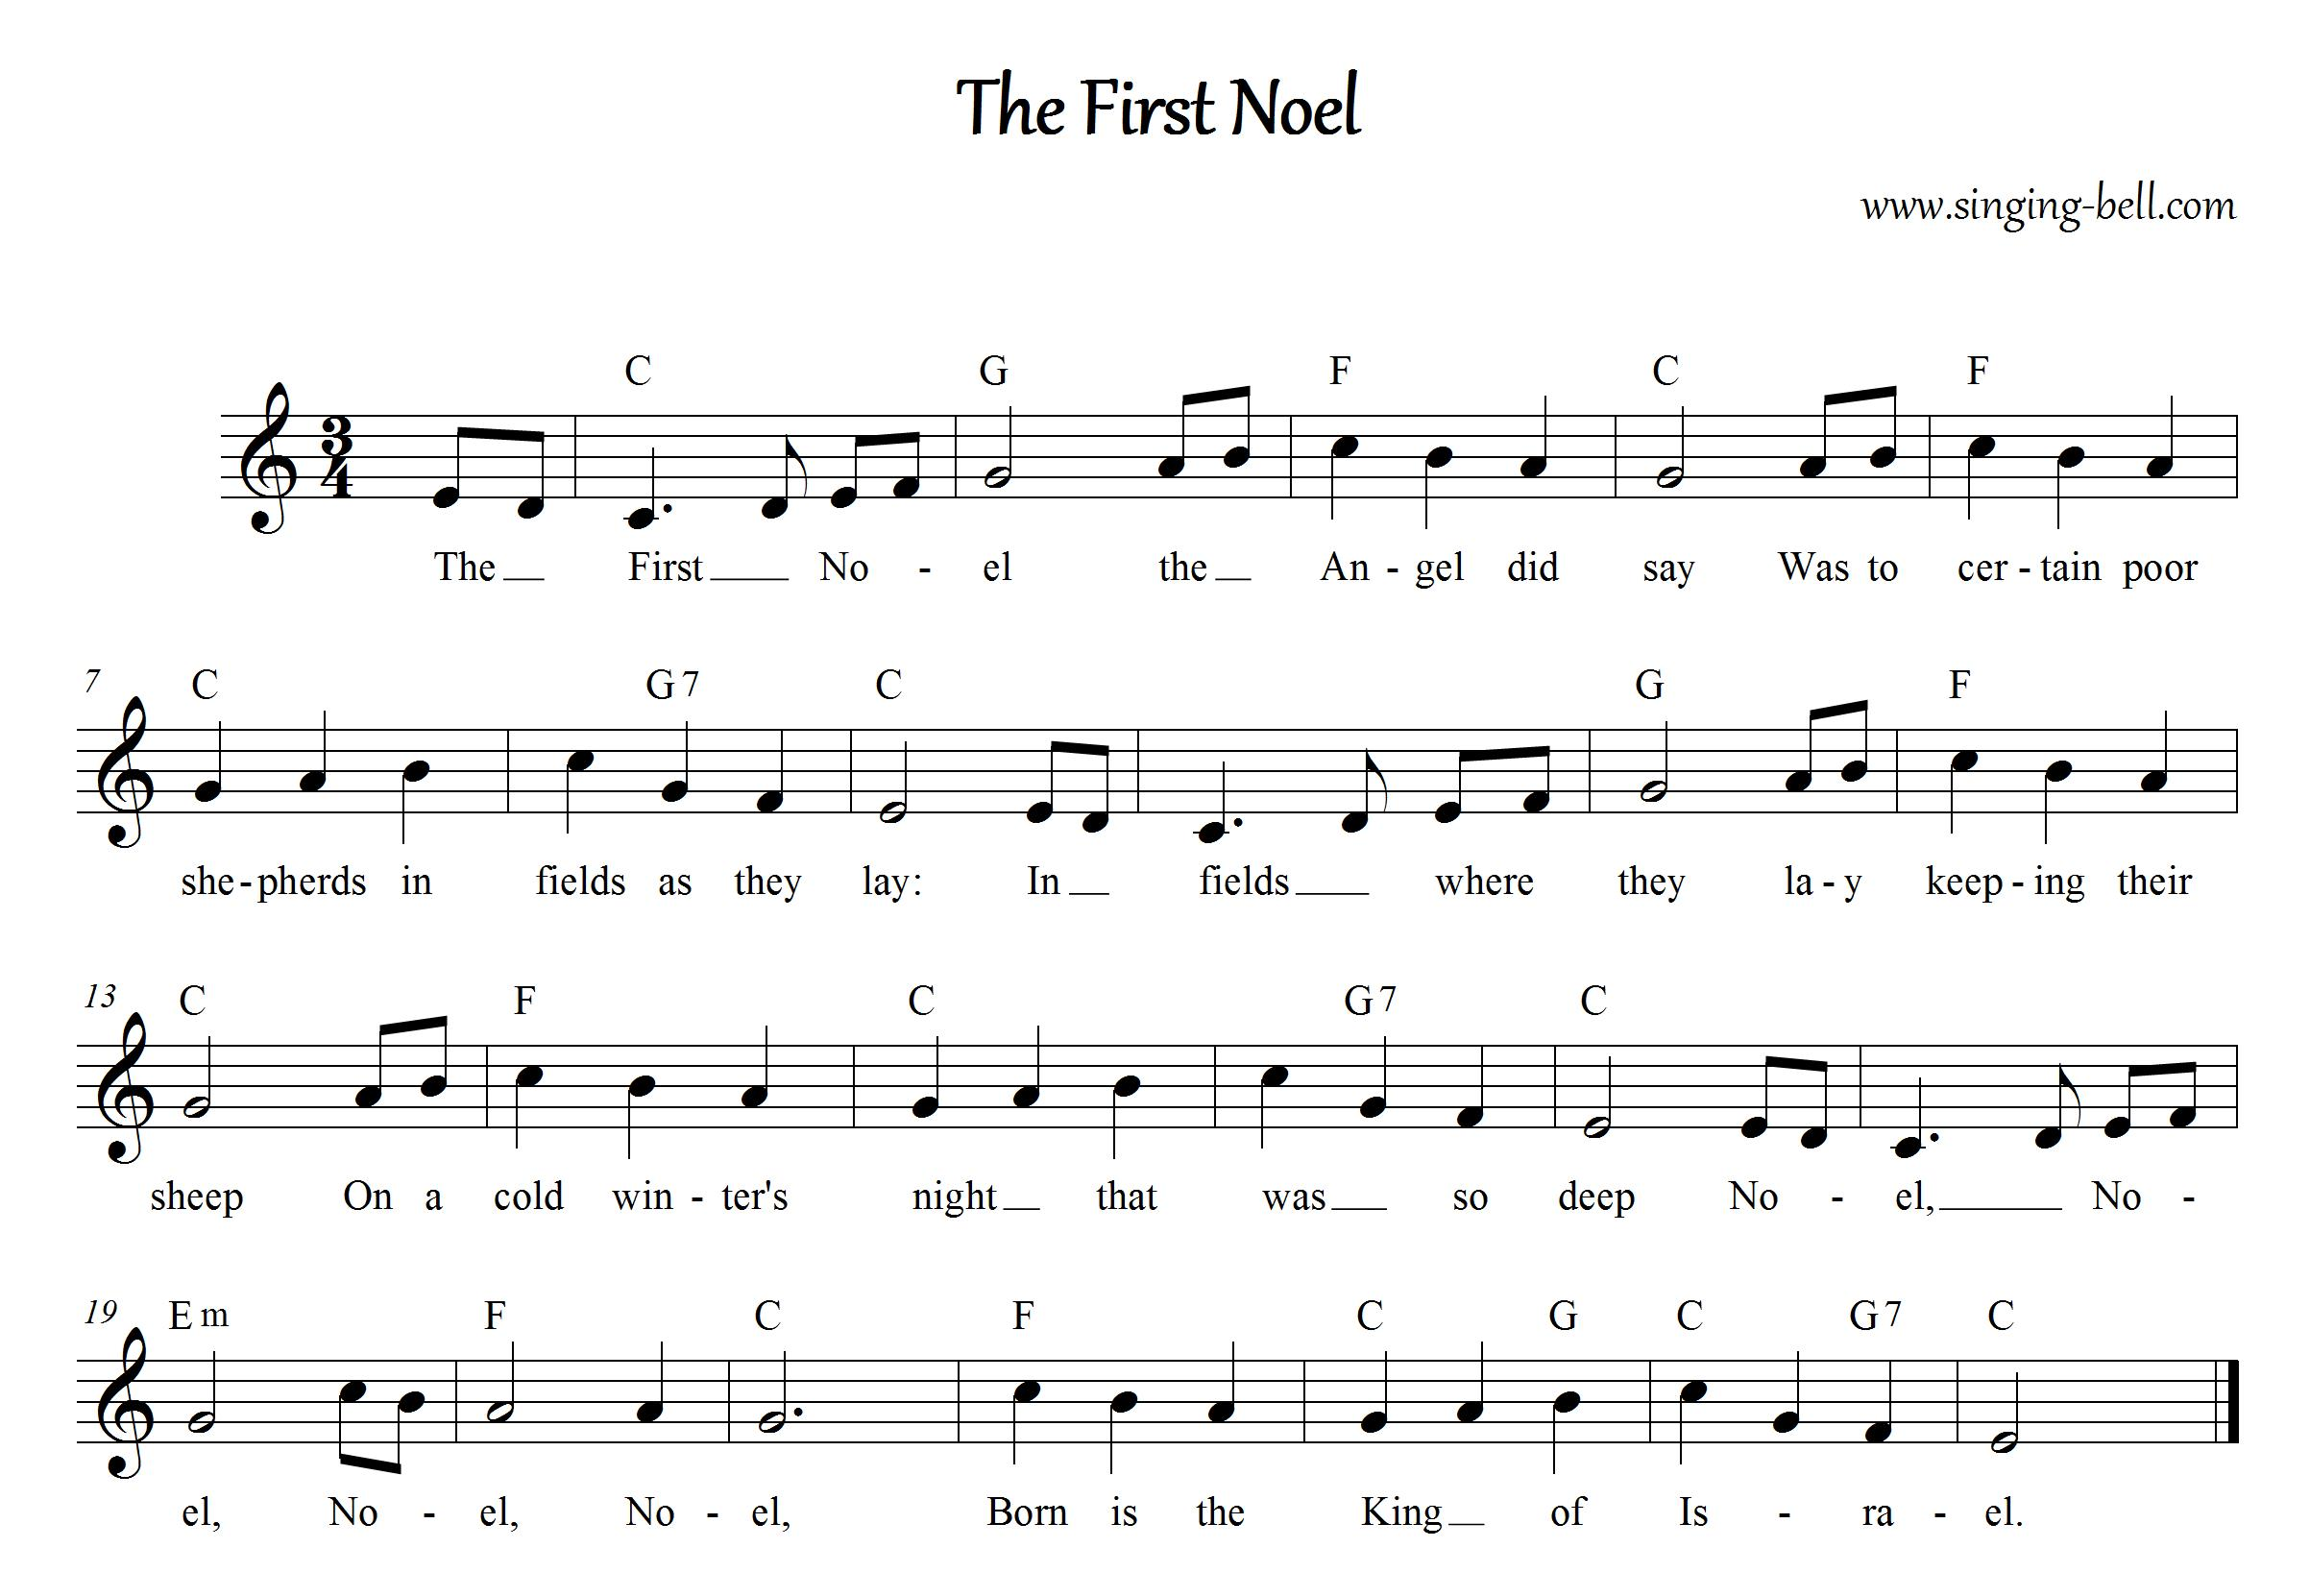 Free Christmas Carols > The First Noel - free mp3 audio song download